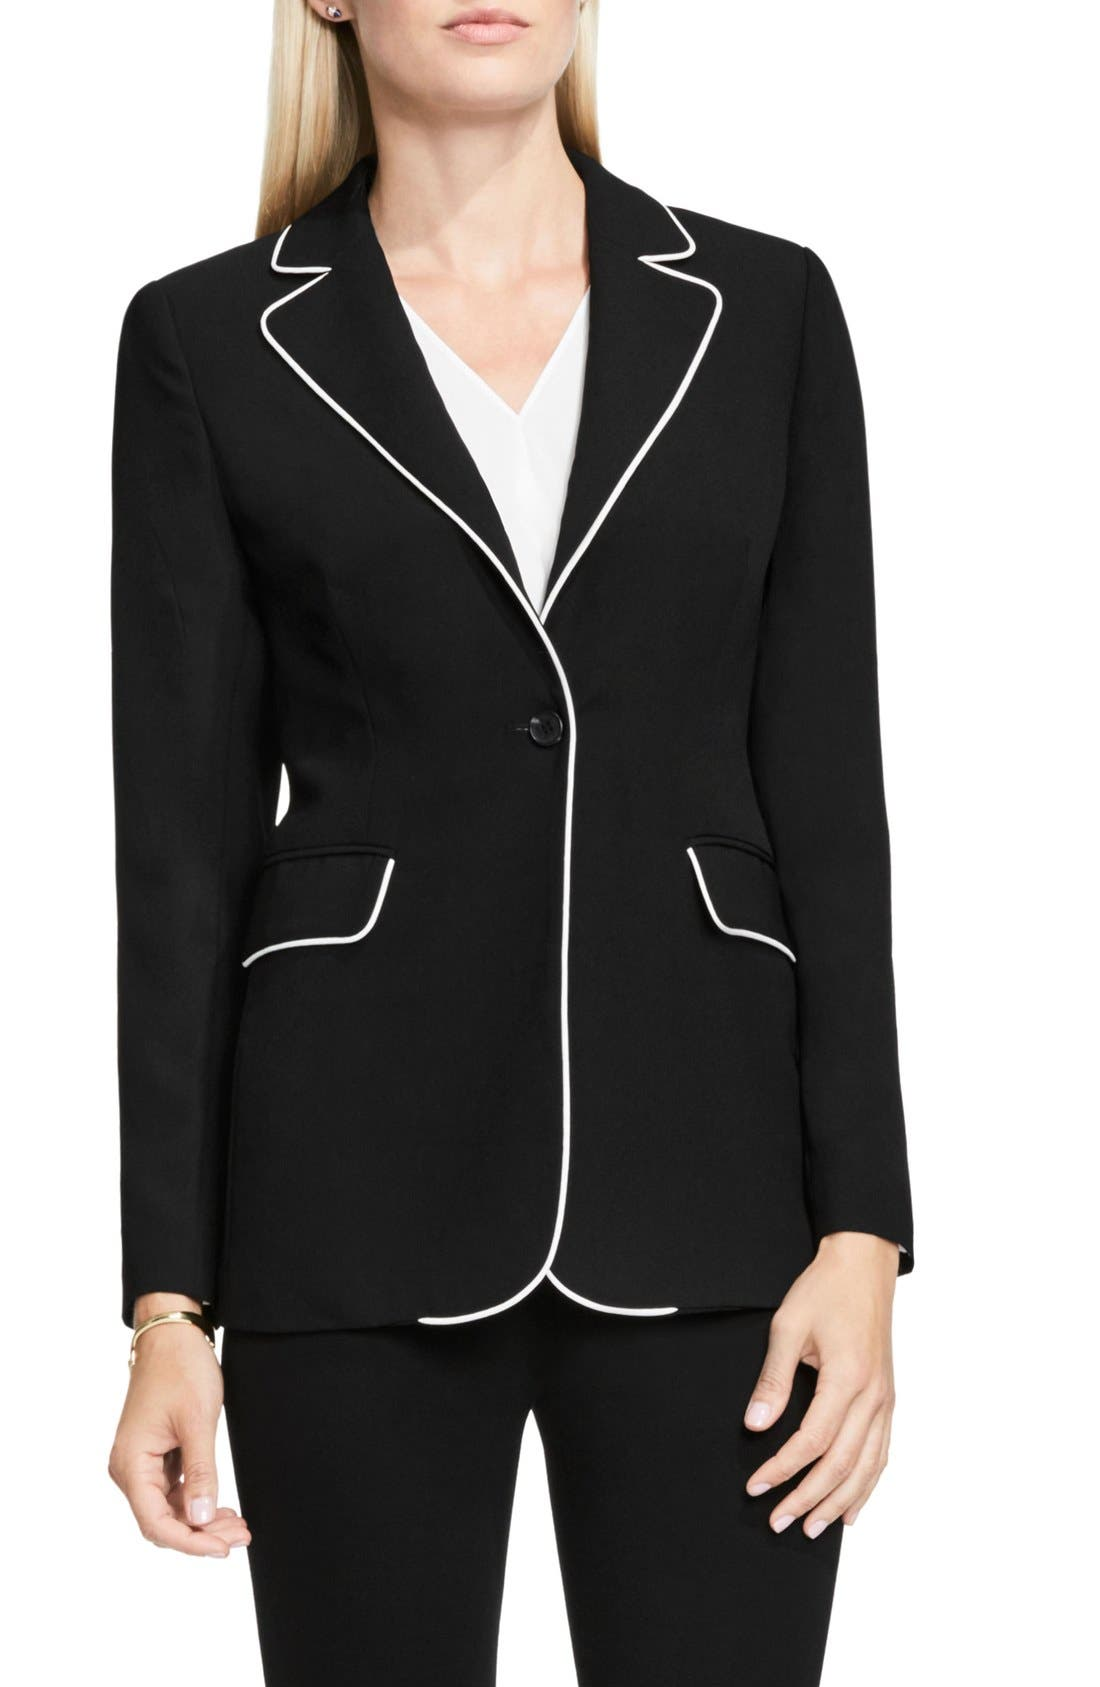 Main Image - Vince Camuto Contrast Piping Blazer